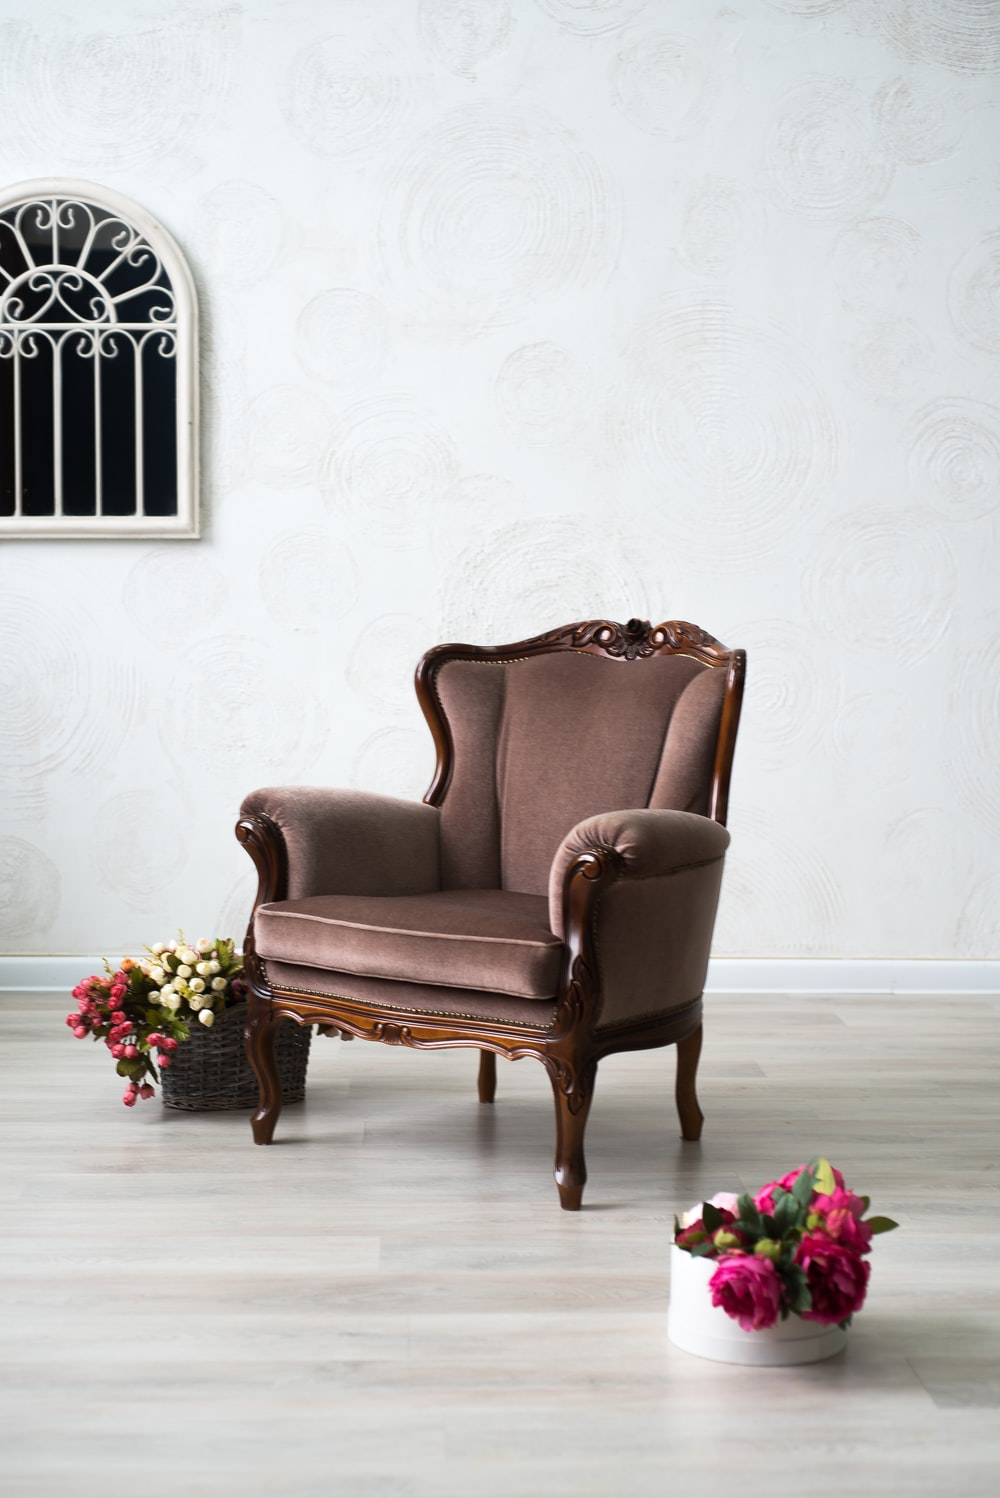 brown leather armchair beside pink roses